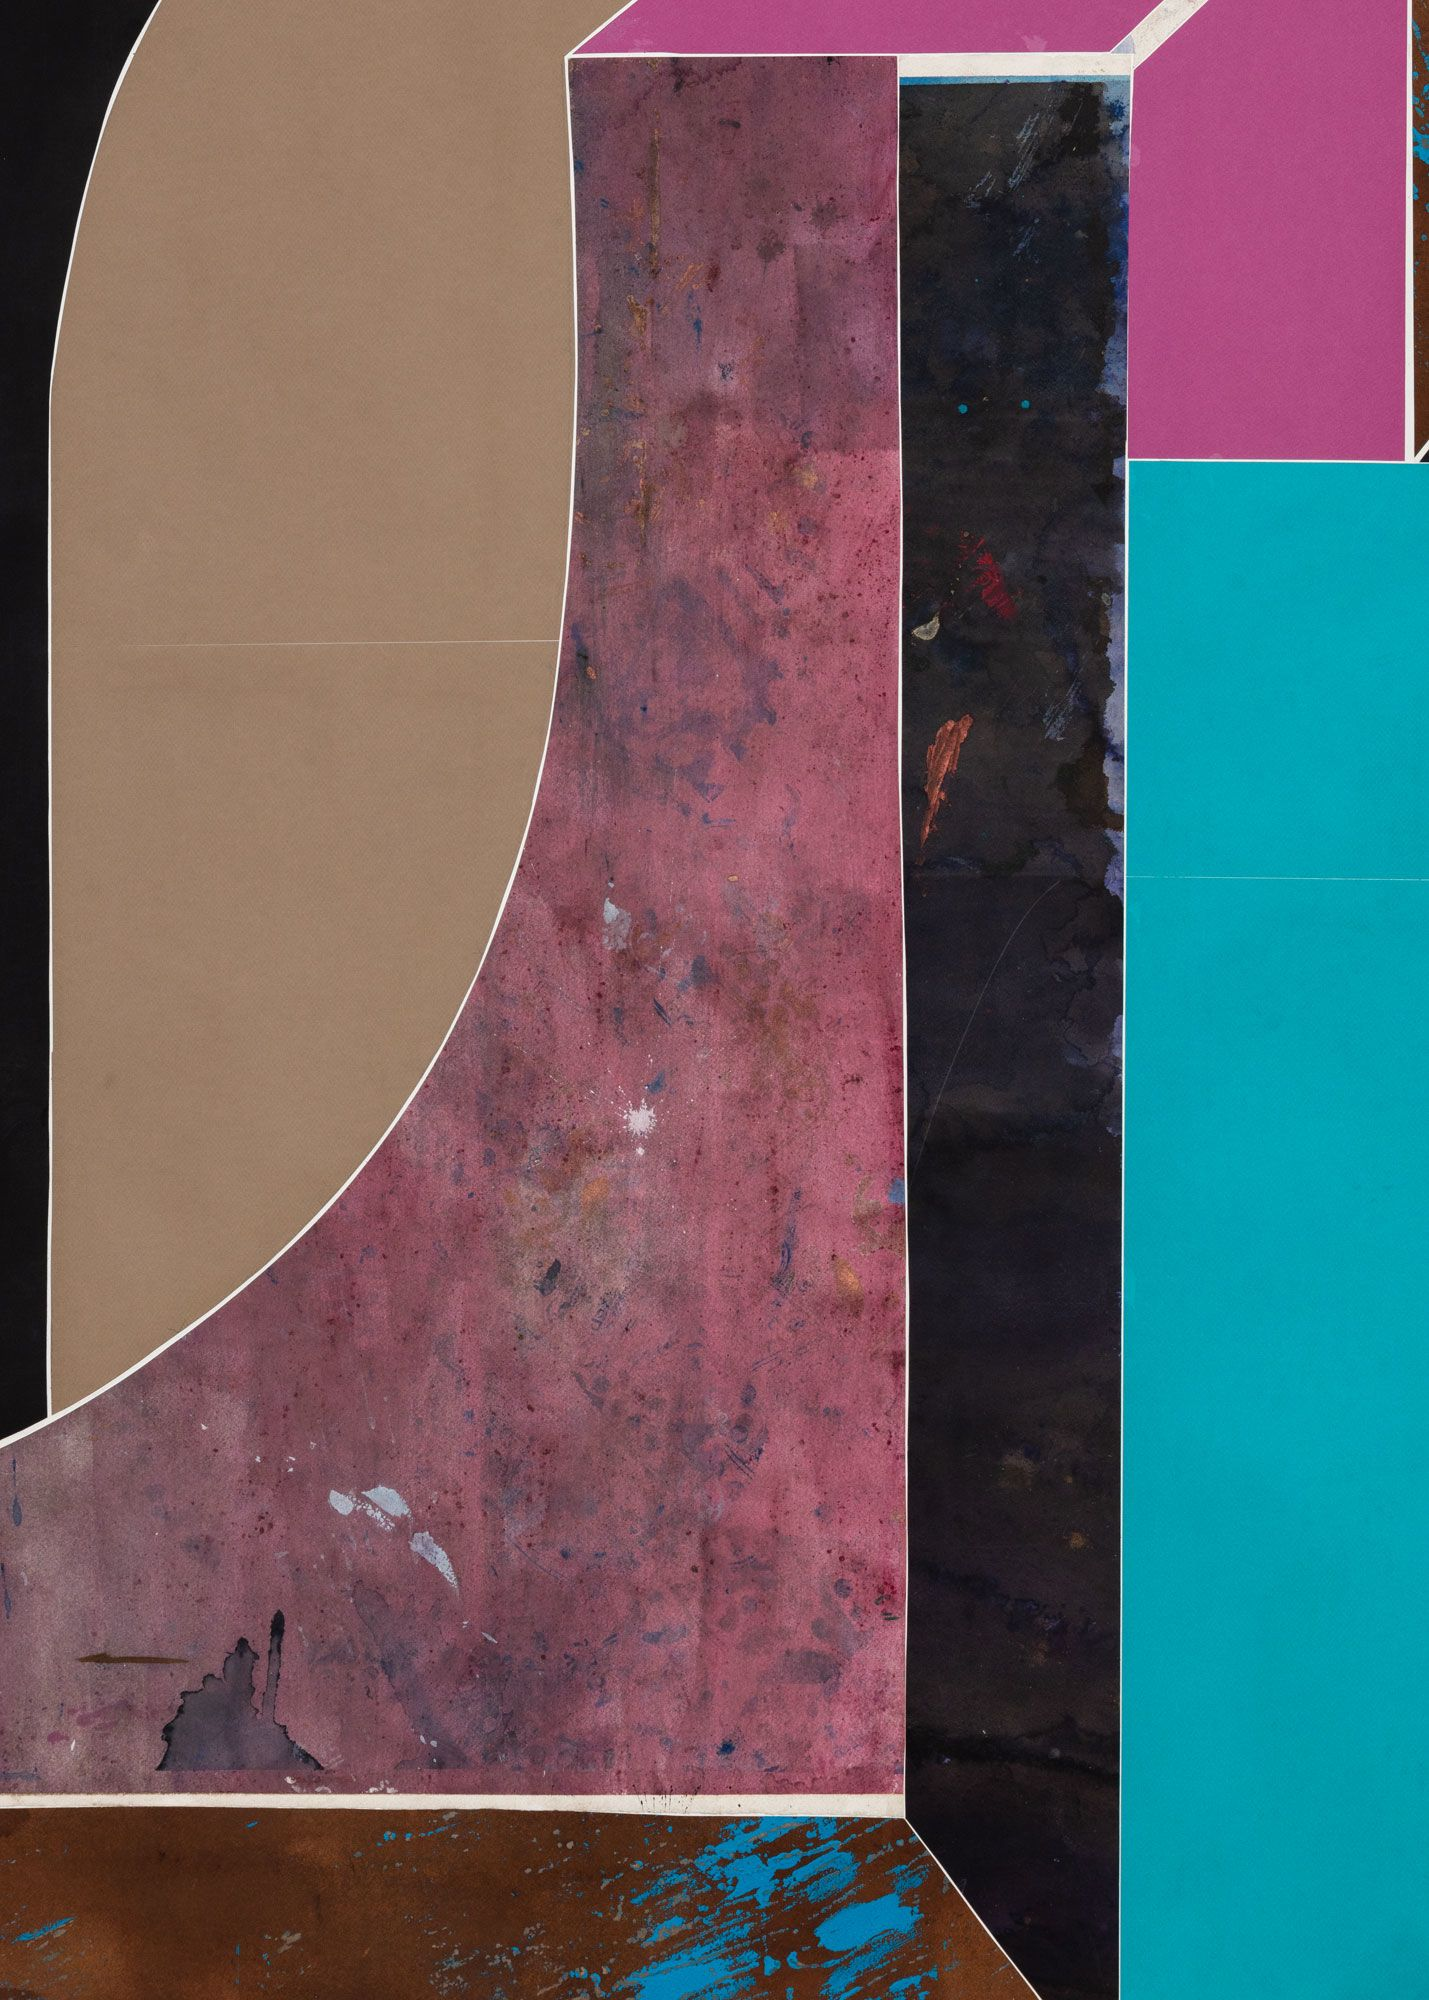 Untitled (floor paper, 2 large curves with drop shadows), detail